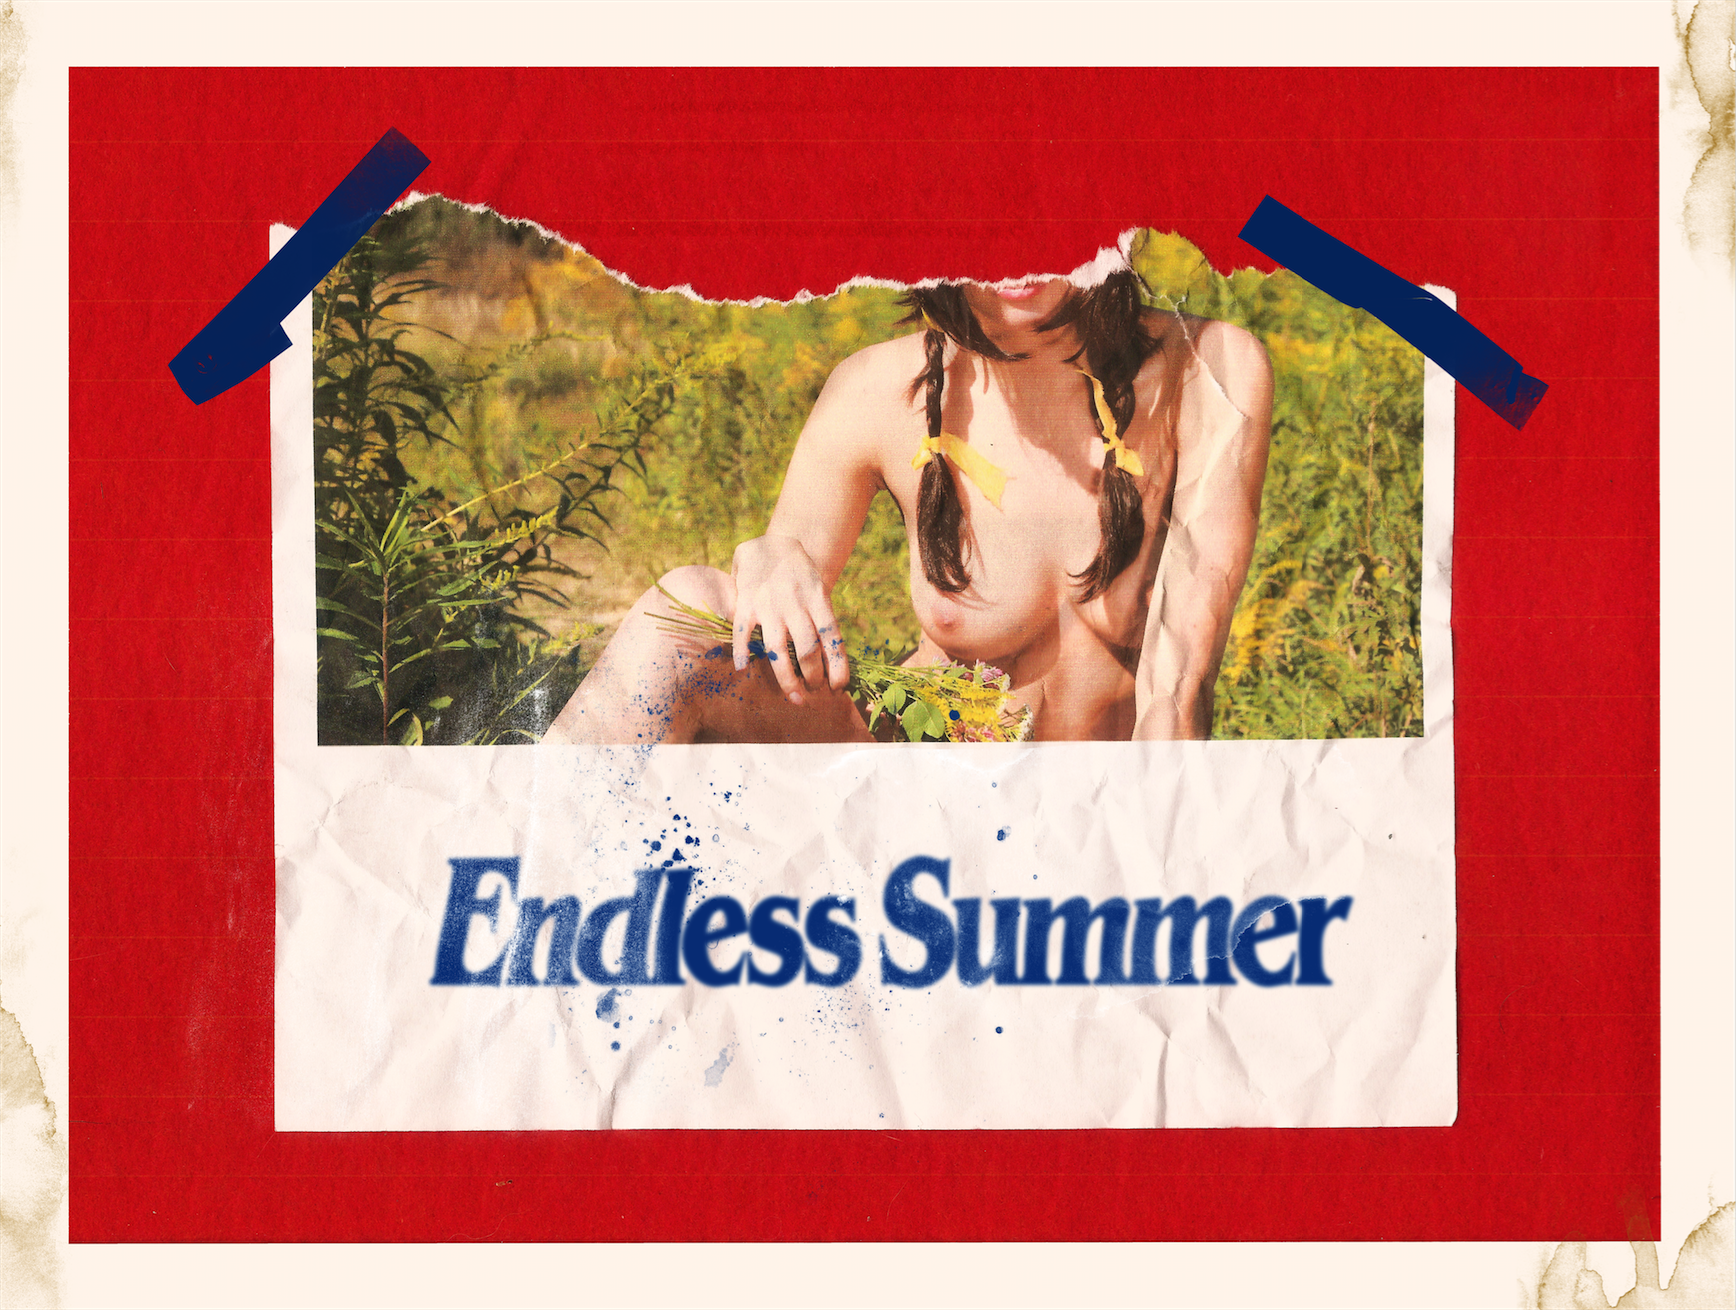 'Endless Summer' 2016 - Ethan Solouki